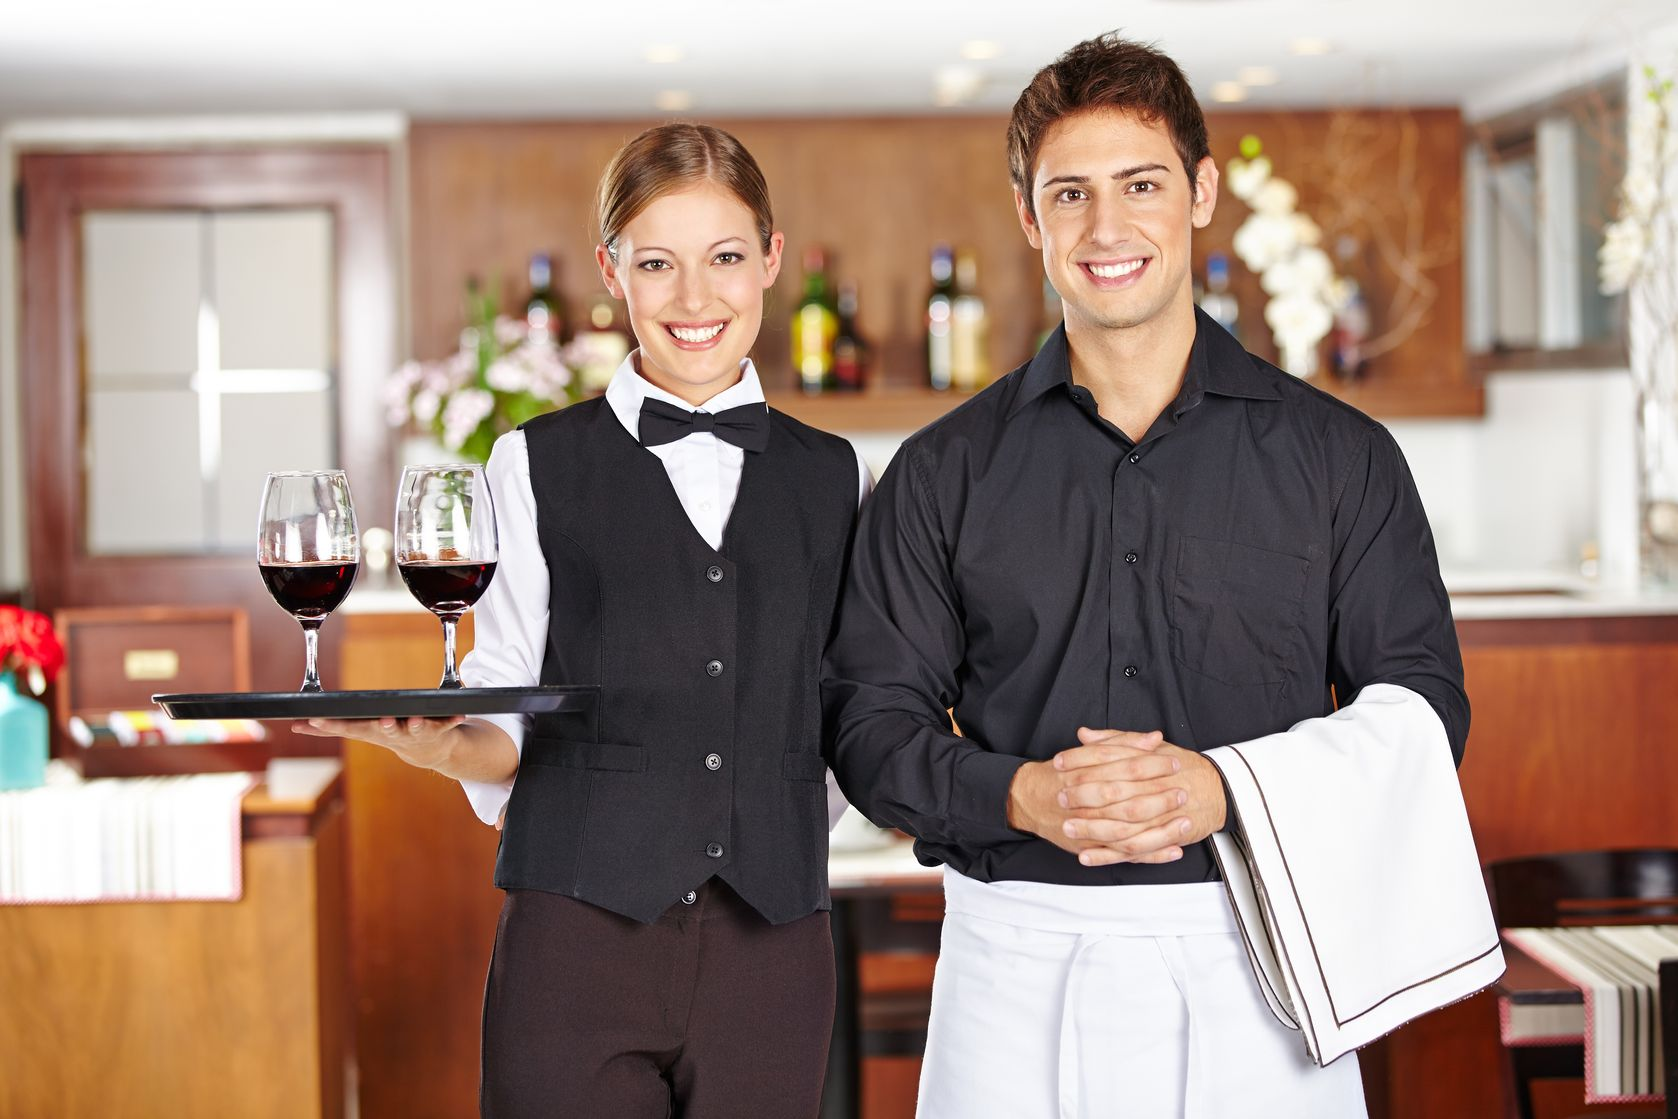 Hospitality and Catering Business for sale in Regional SA